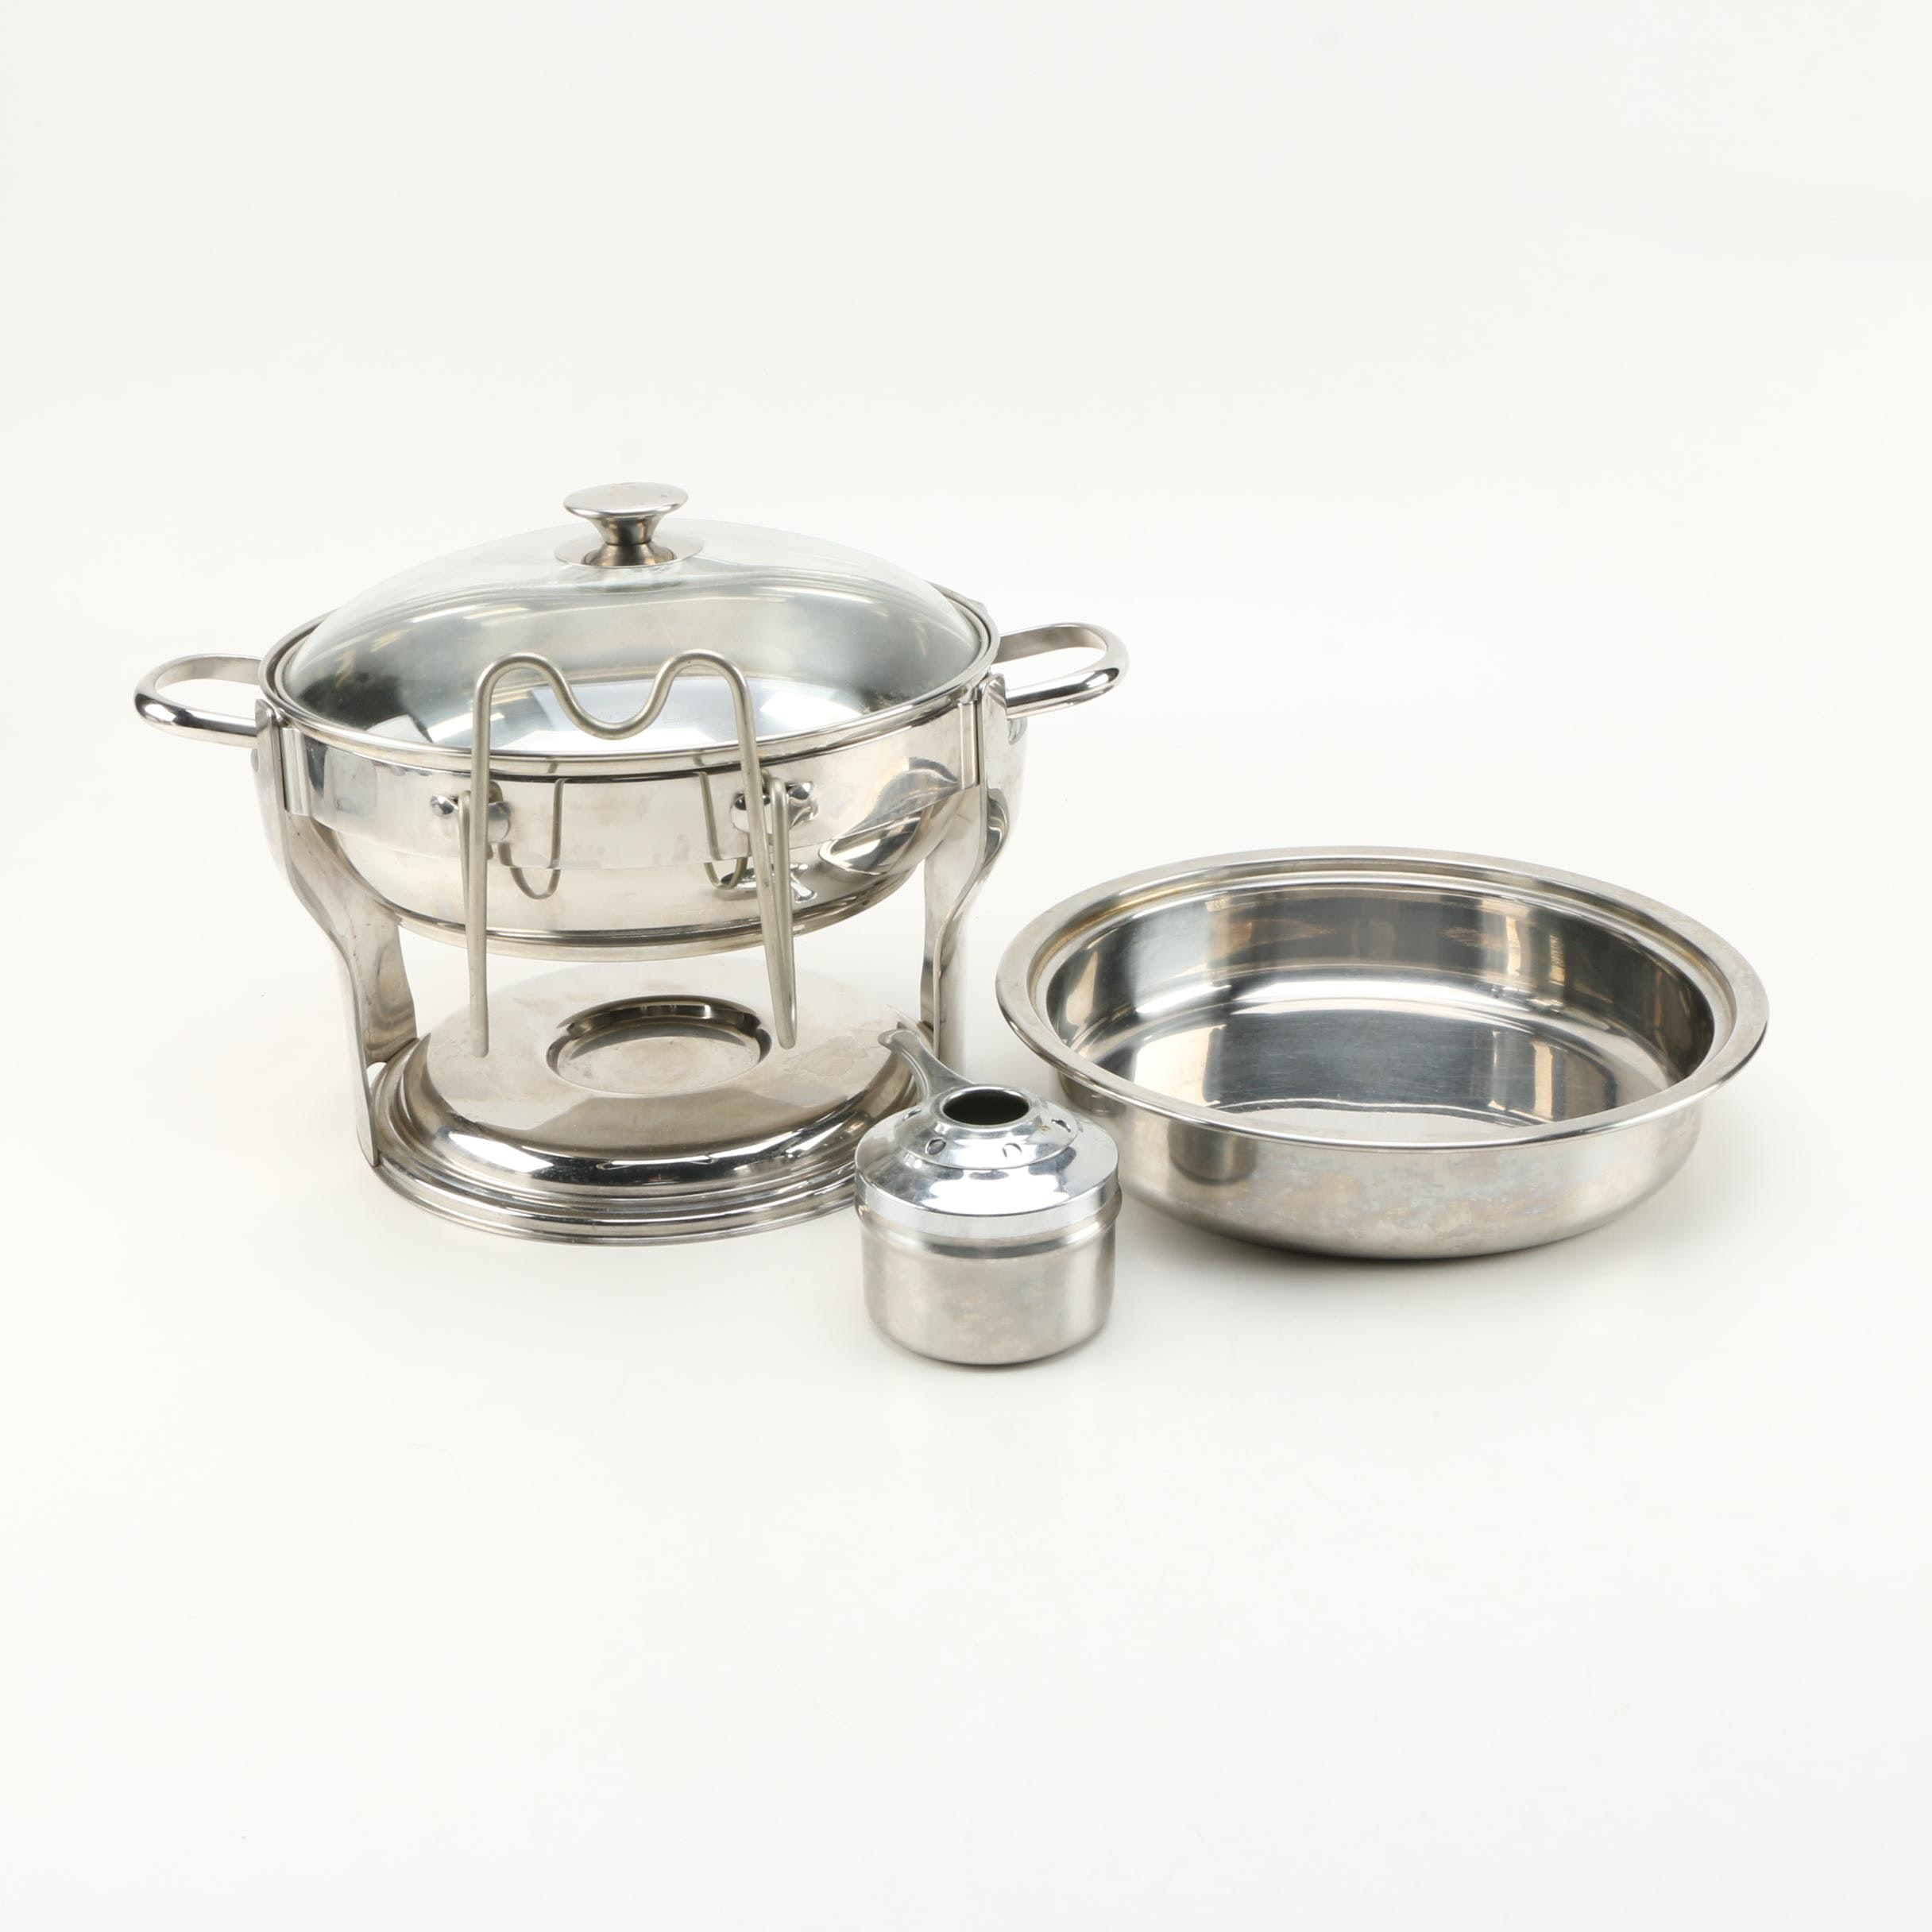 Stainless Serveware Including Culinary Essentials